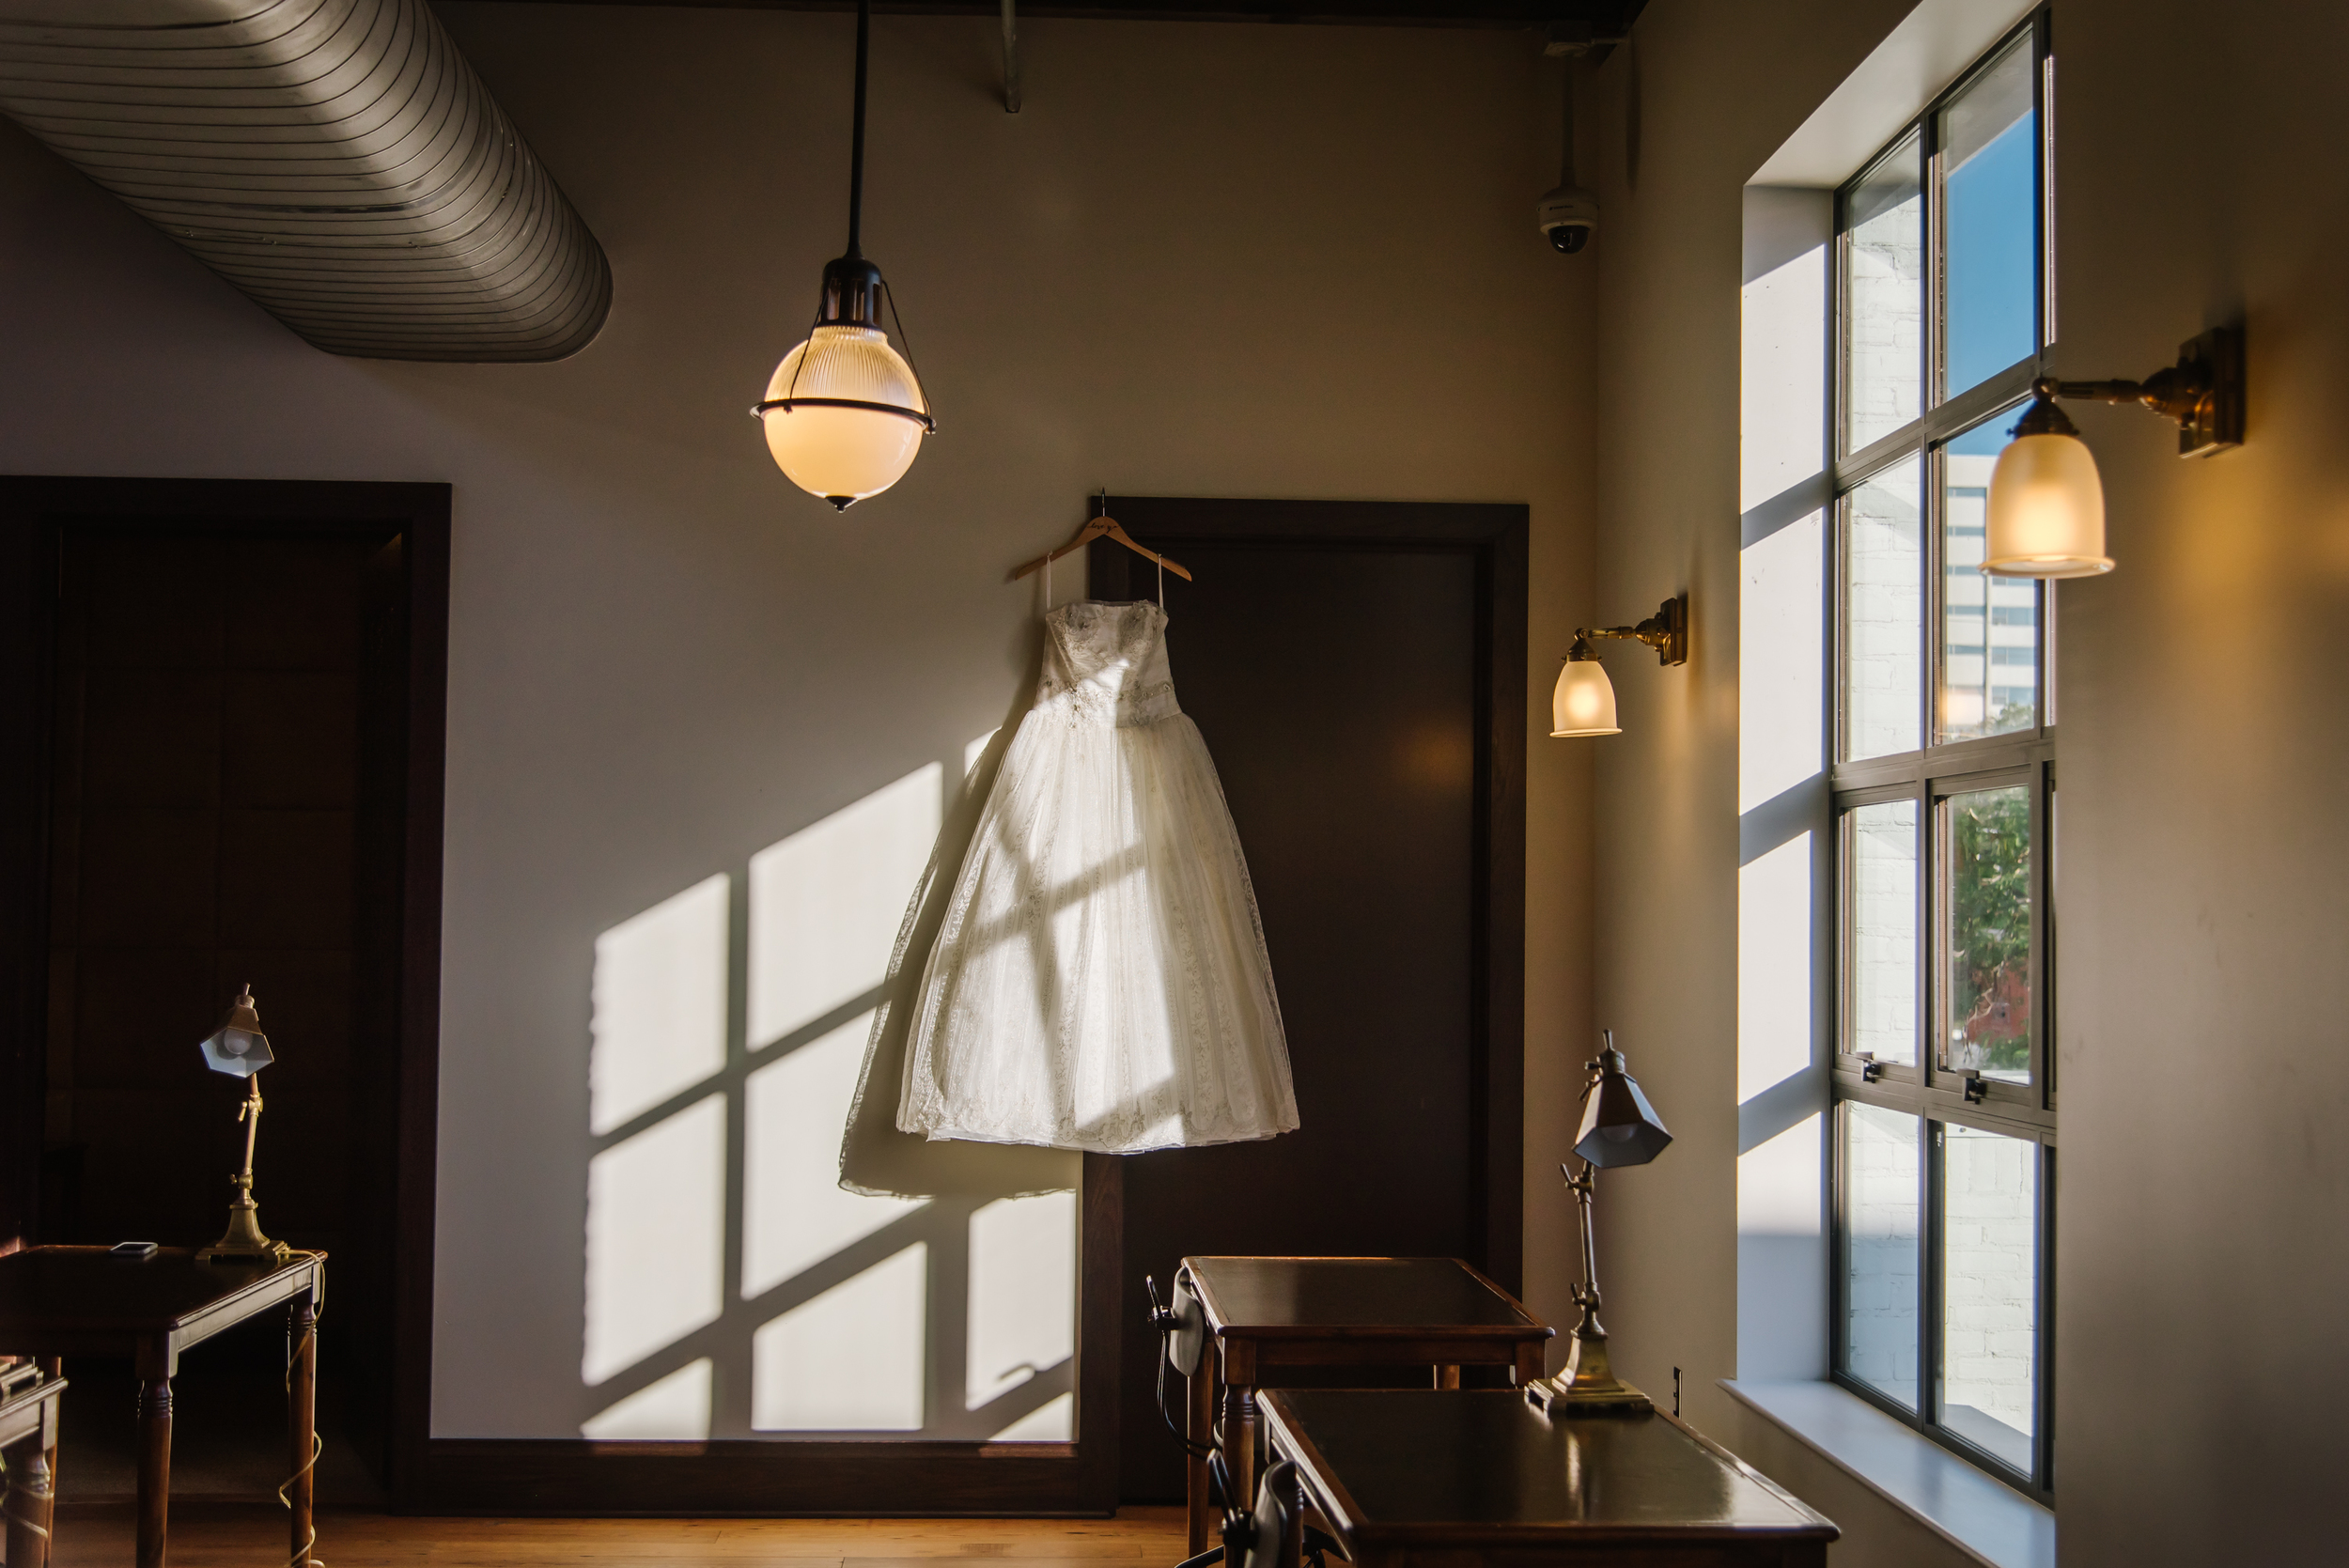 tampa-wedding-photographer-dress-window-light-getting-ready-natural-oxford-exchange-published-every-last-detail